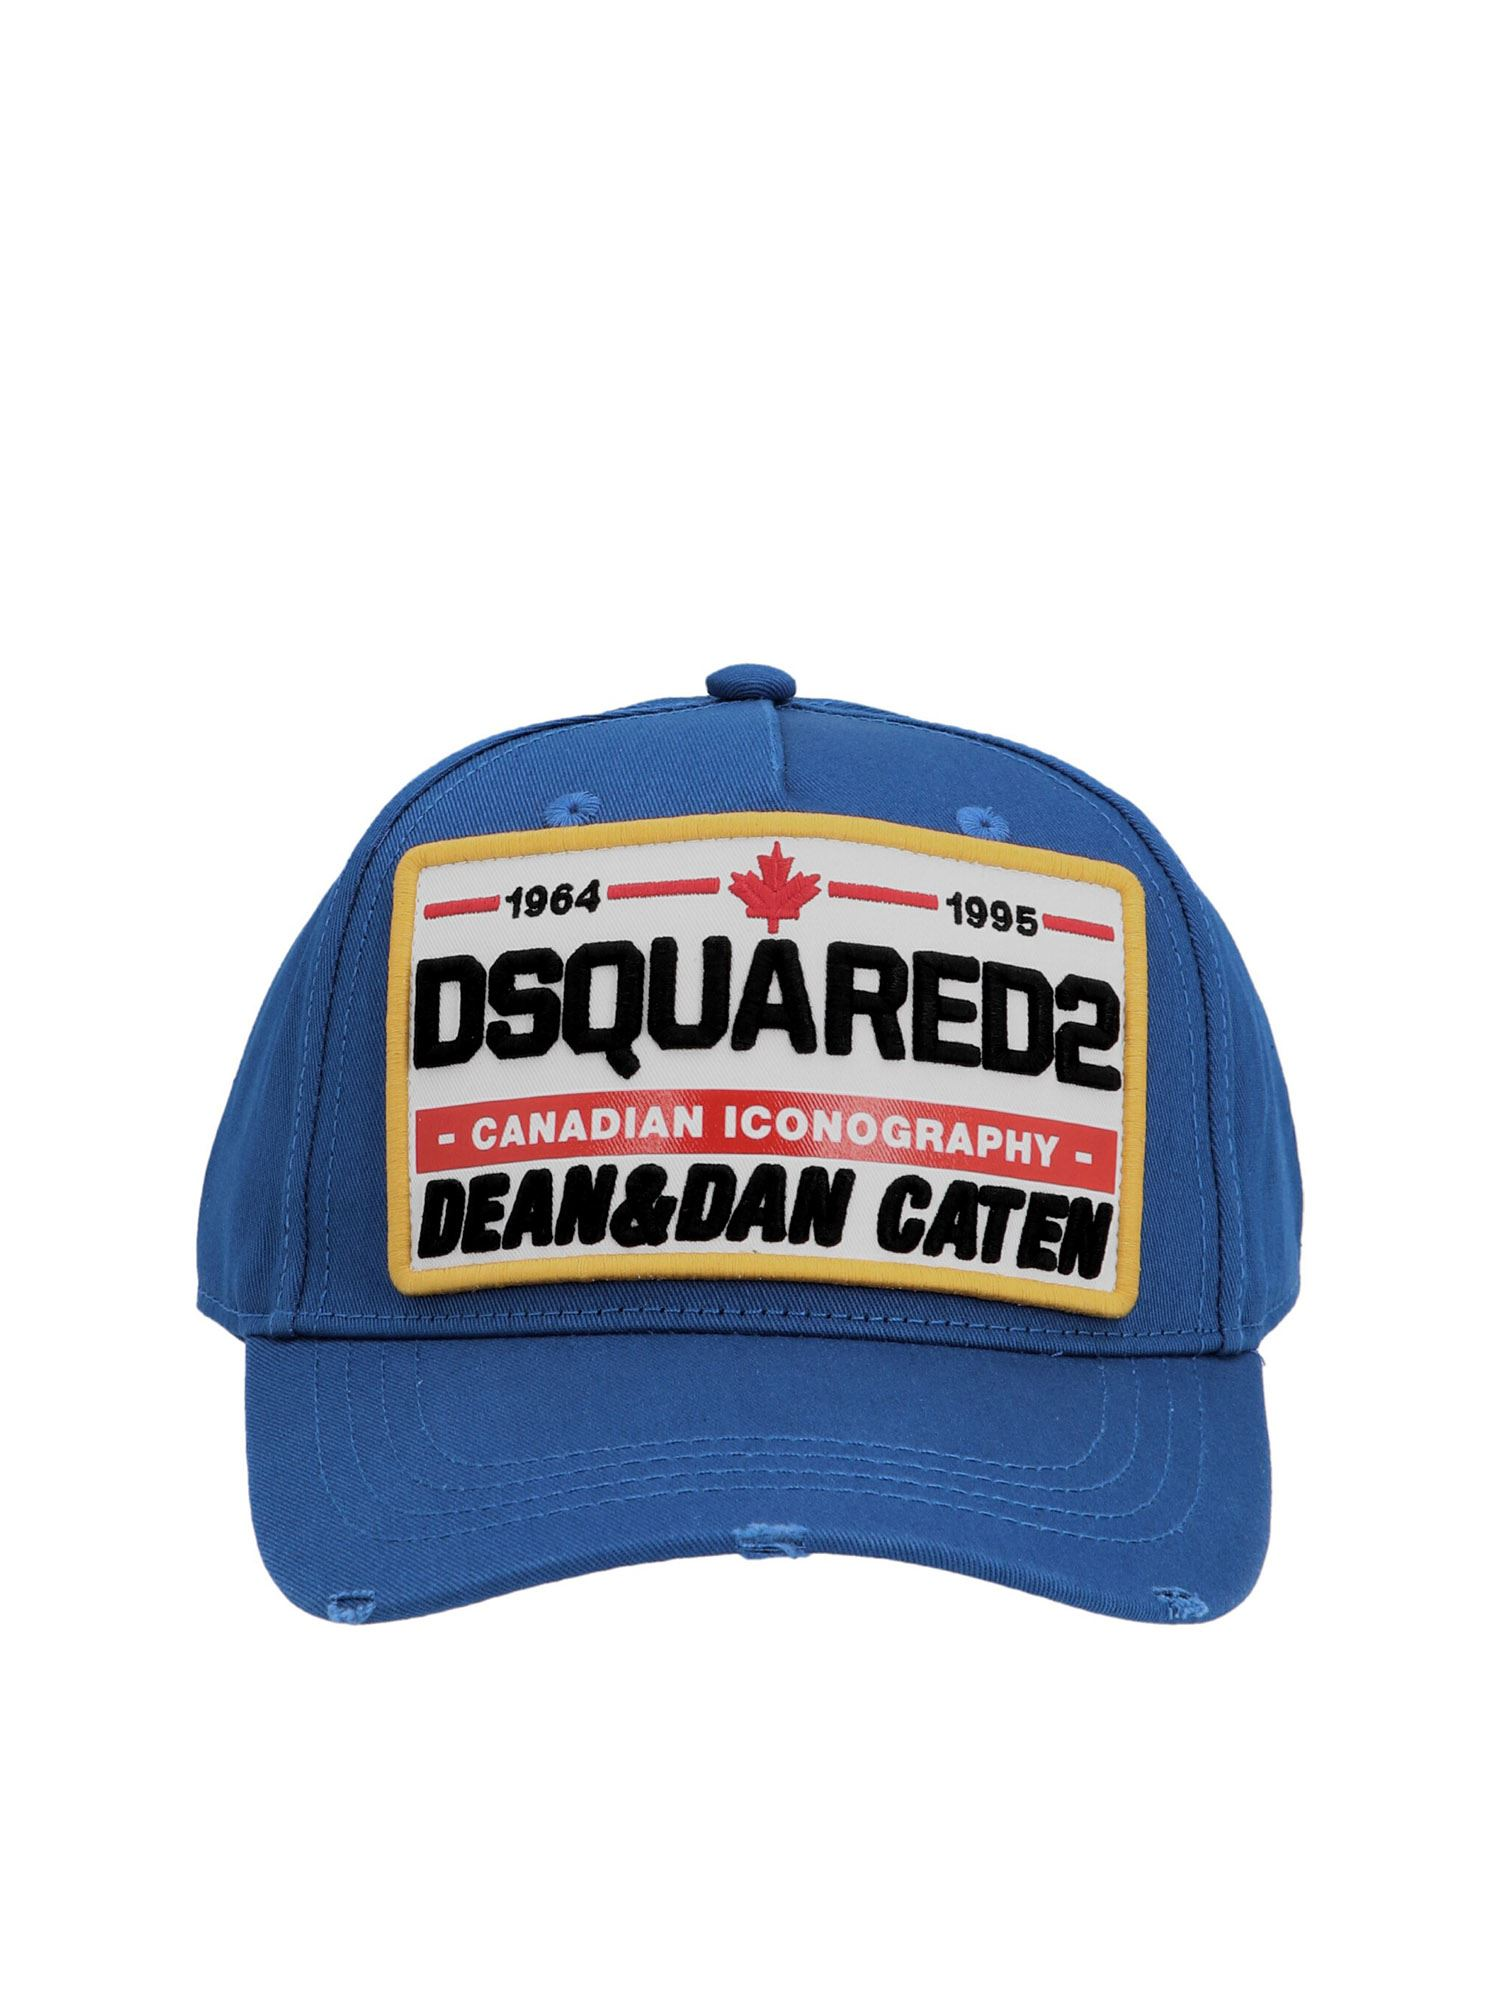 Dsquared2 BASEBALL CAP IN BLUE